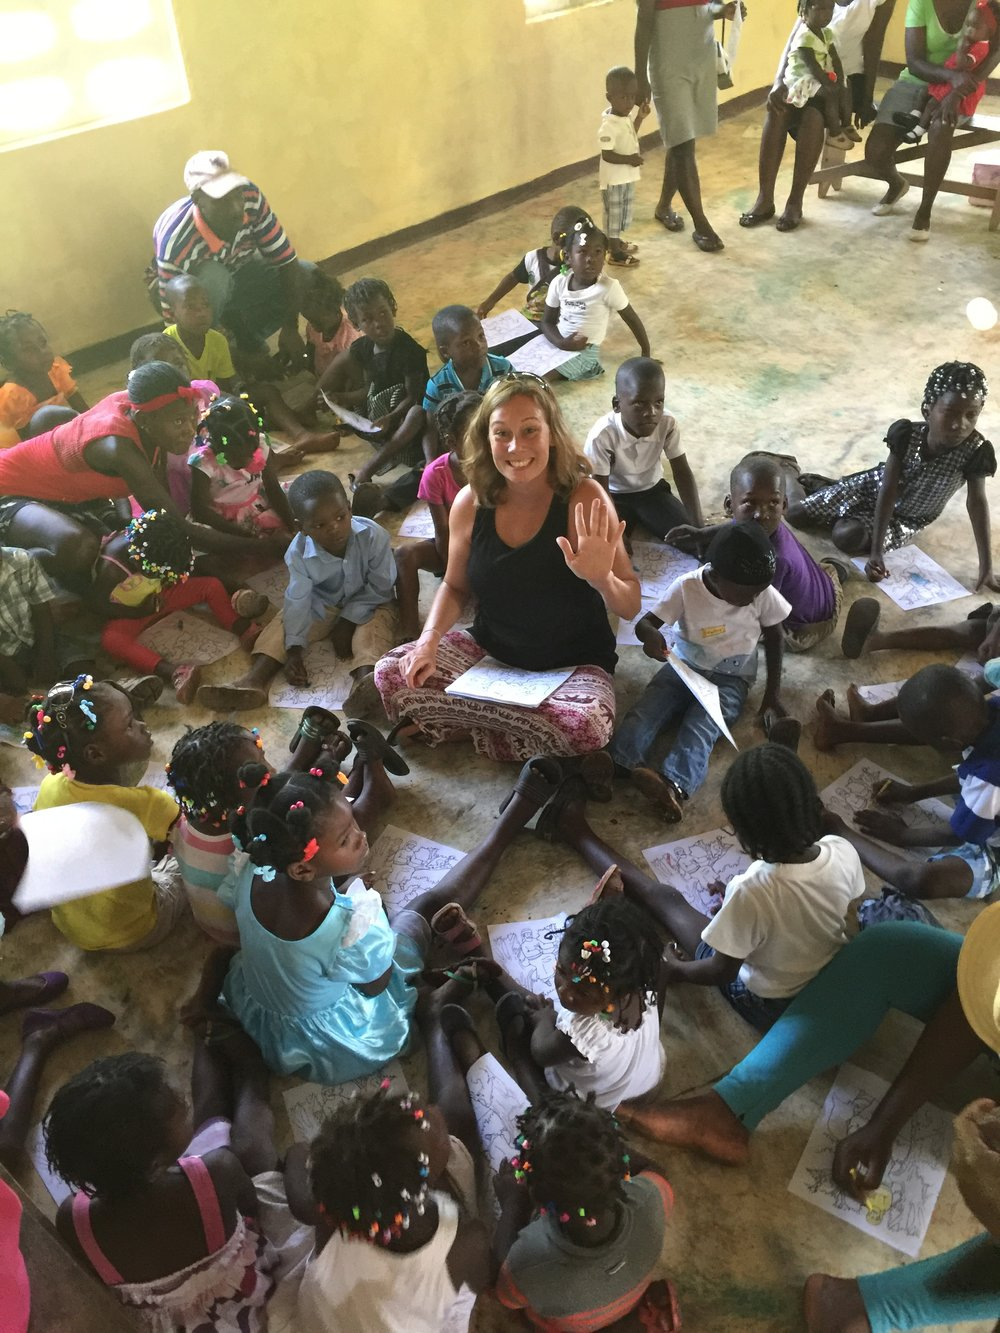 711 patients served at medical clinics, 335 children taught at VBS, 50 widows given food for a month... This was a HIGH IMPACT trip! - Click here for more Haiti highlights